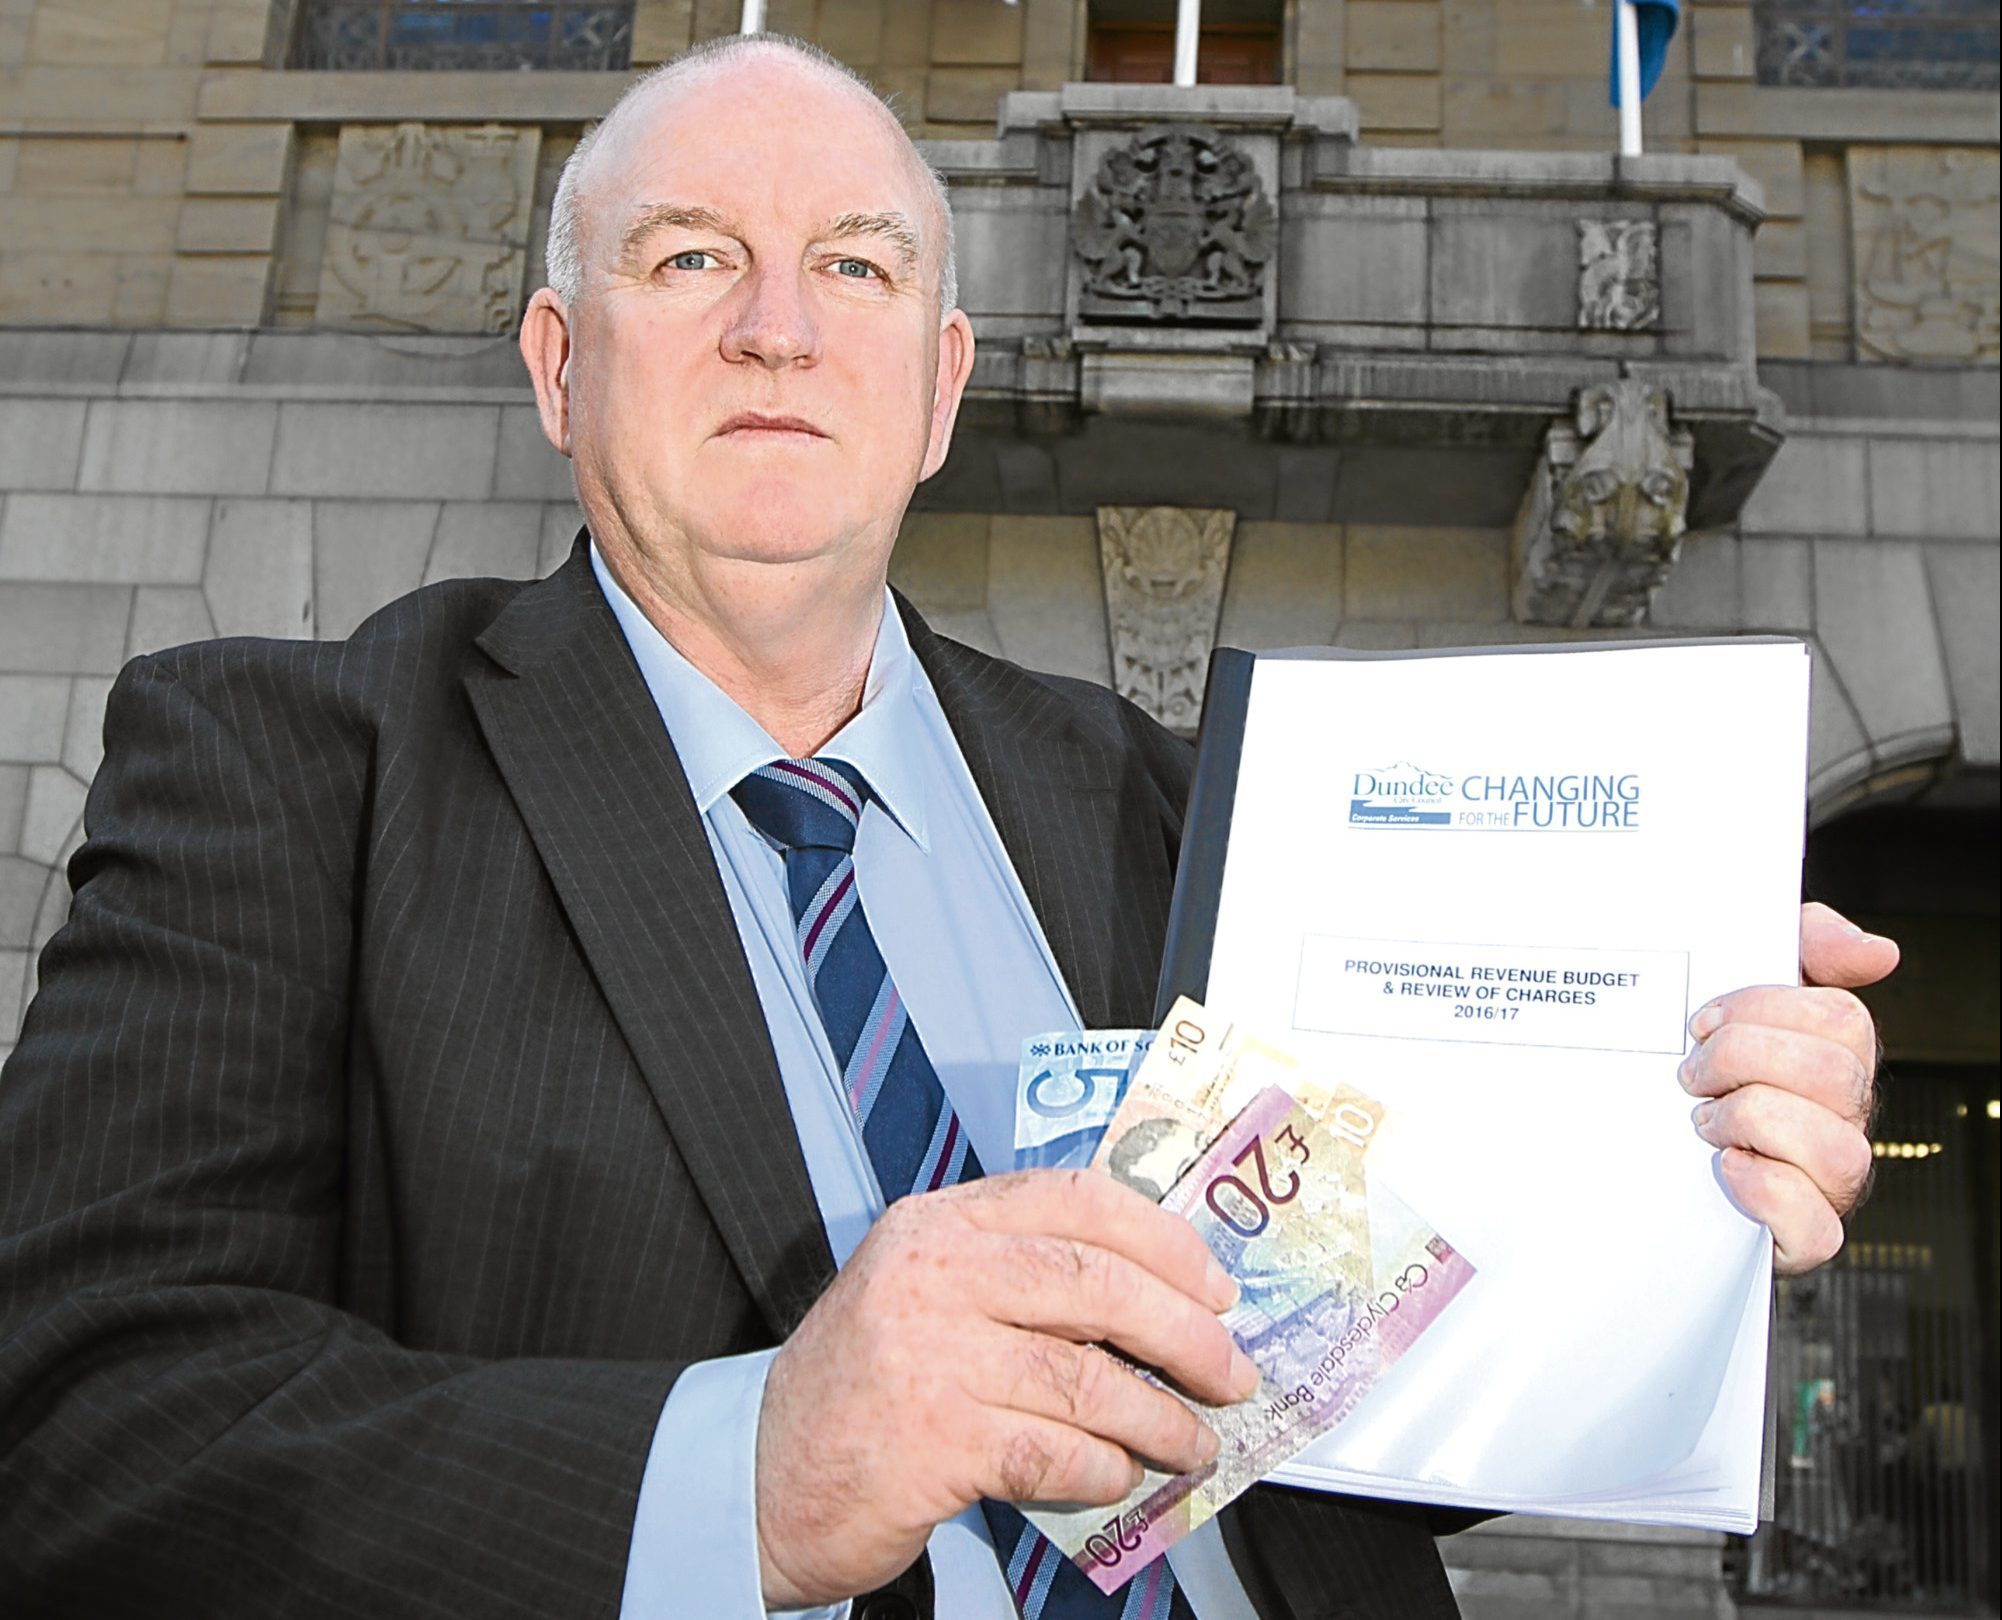 Kevin Keenan wants to see more cash collected from residents.